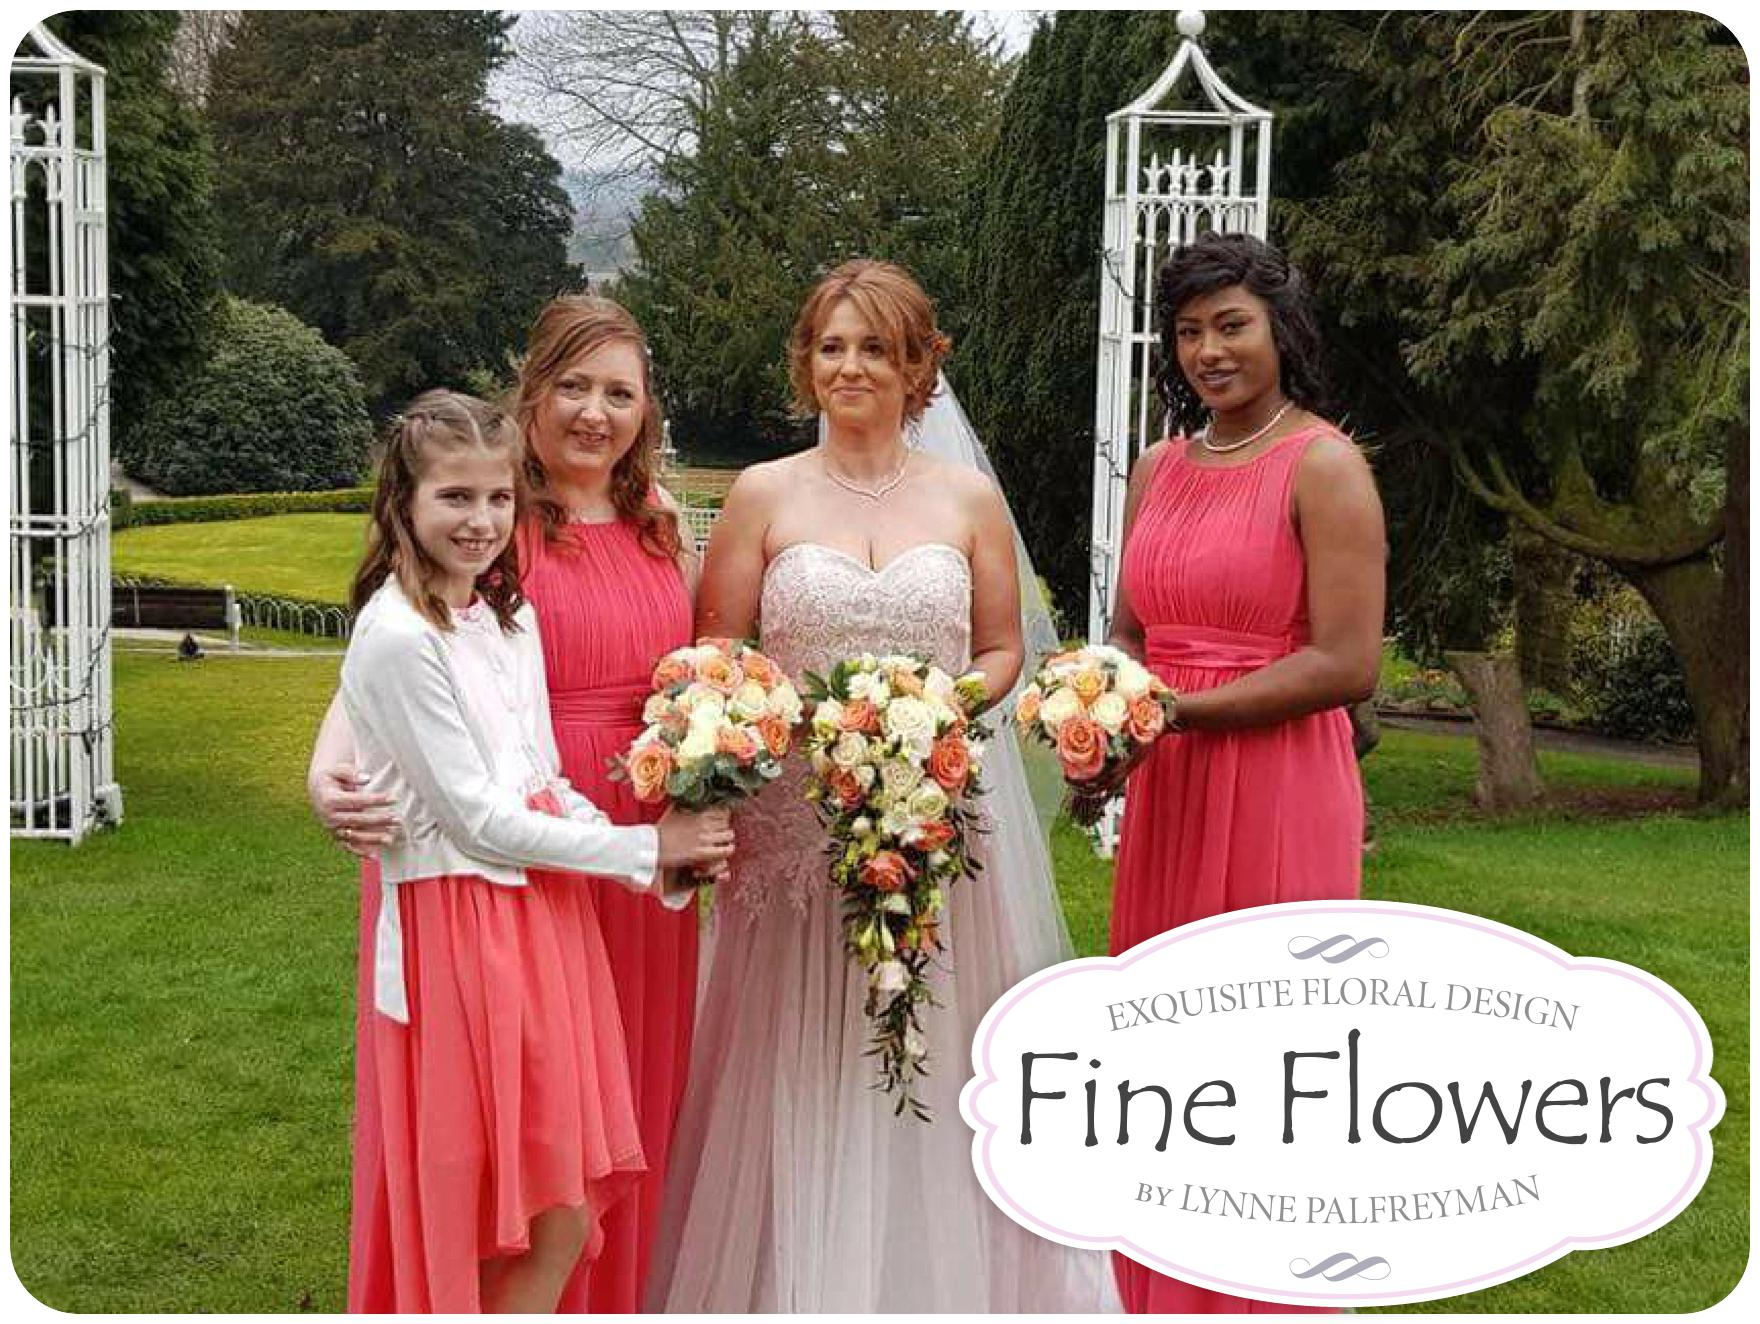 Wedding flowers for James + Rebecca's wedding by Rugeley Wedding Florist at Hawkesyard Estate by Rugeley Floral Studio Fine Flowers